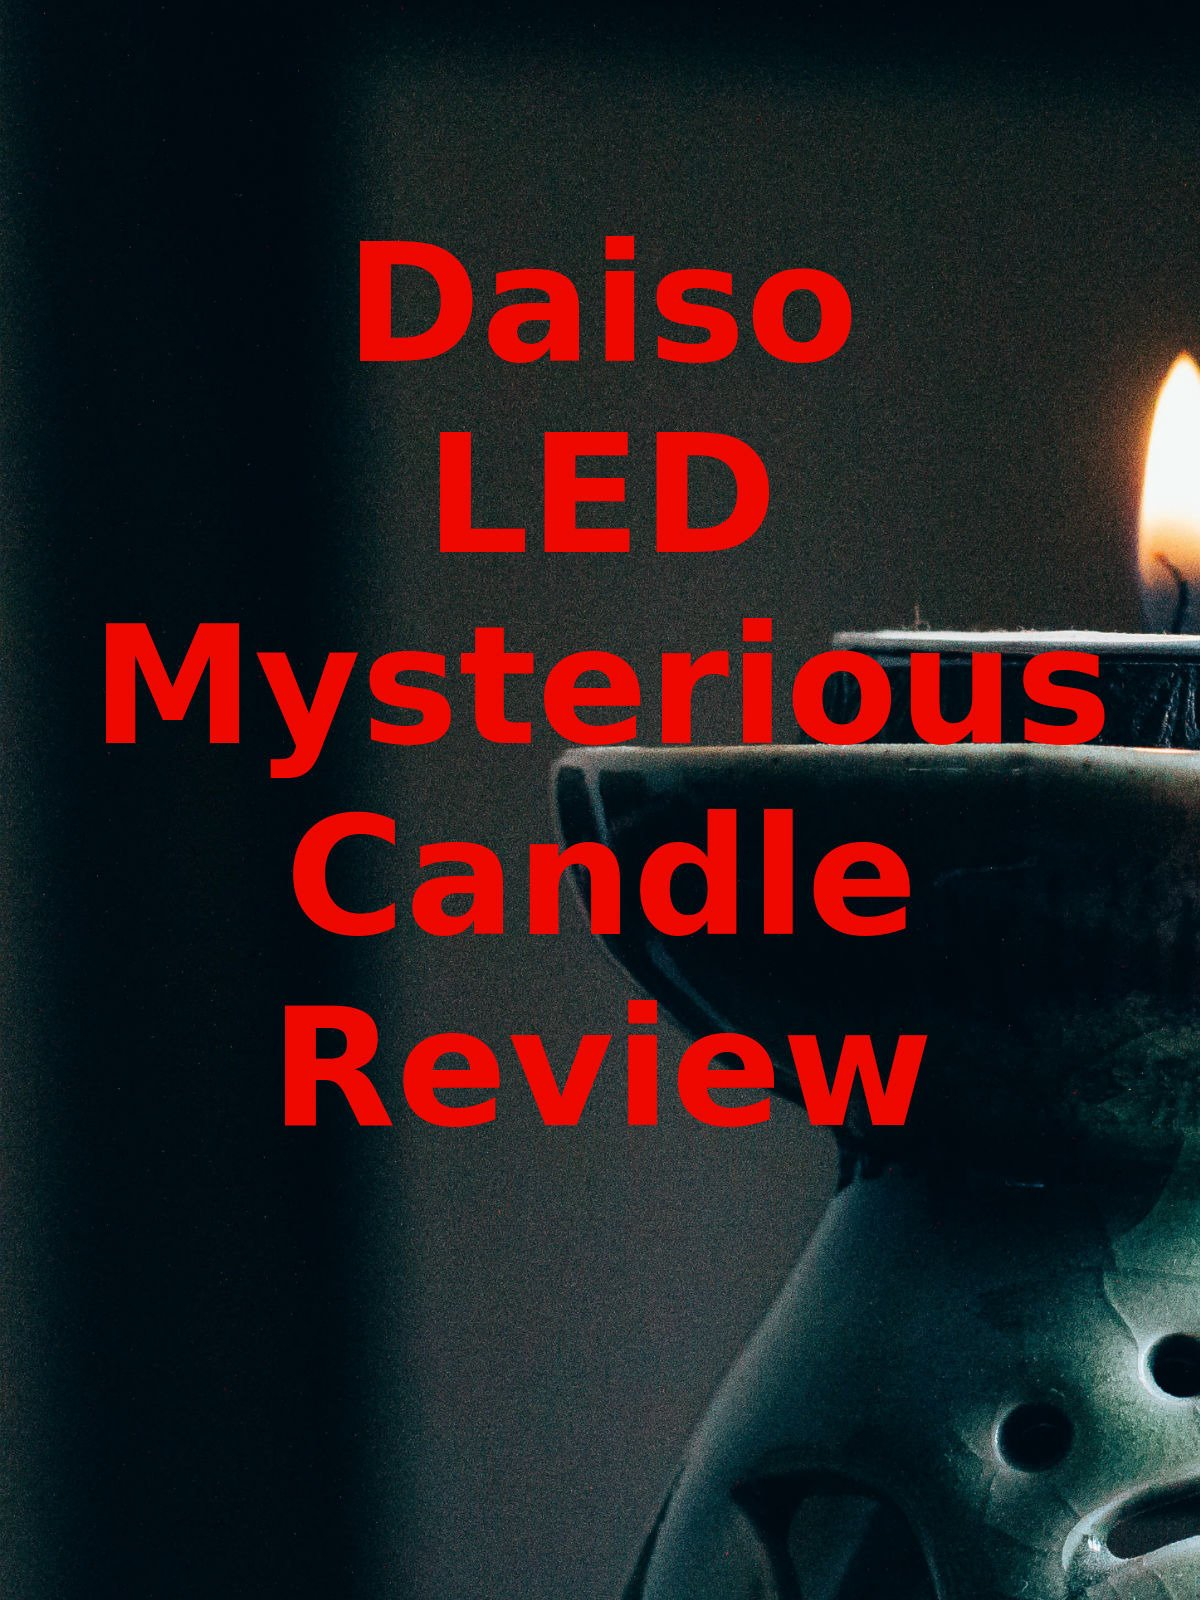 Review: Daiso LED Mysterious Candle Review on Amazon Prime Instant Video UK